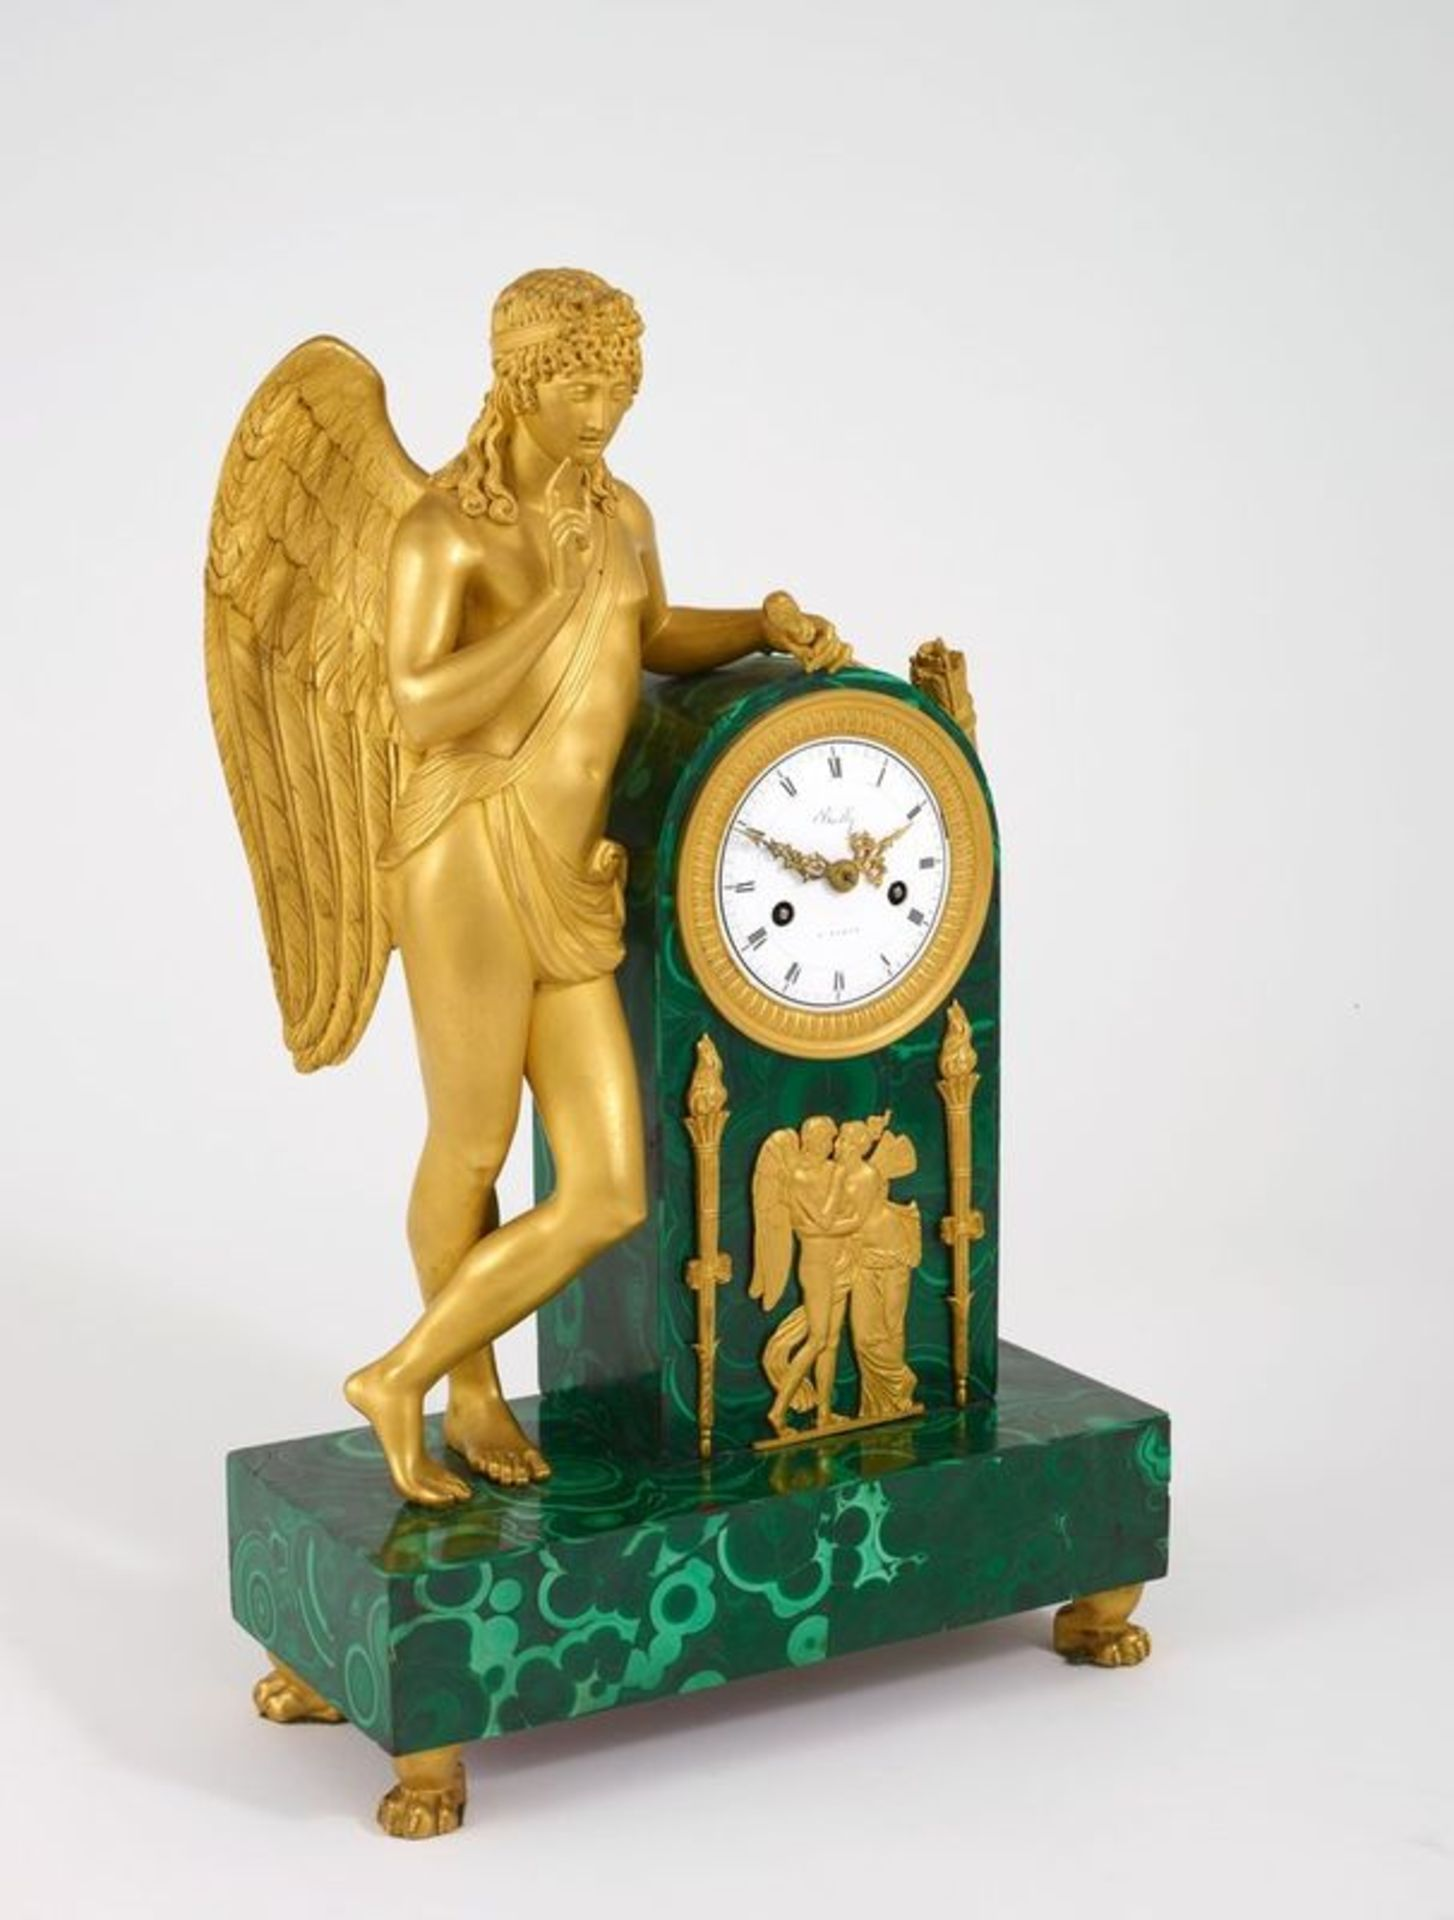 FRENCH ORMOLU, PATINATED-BRONZE AND MALACHITE MANTEL CLOCK, Early 19th century - [...]